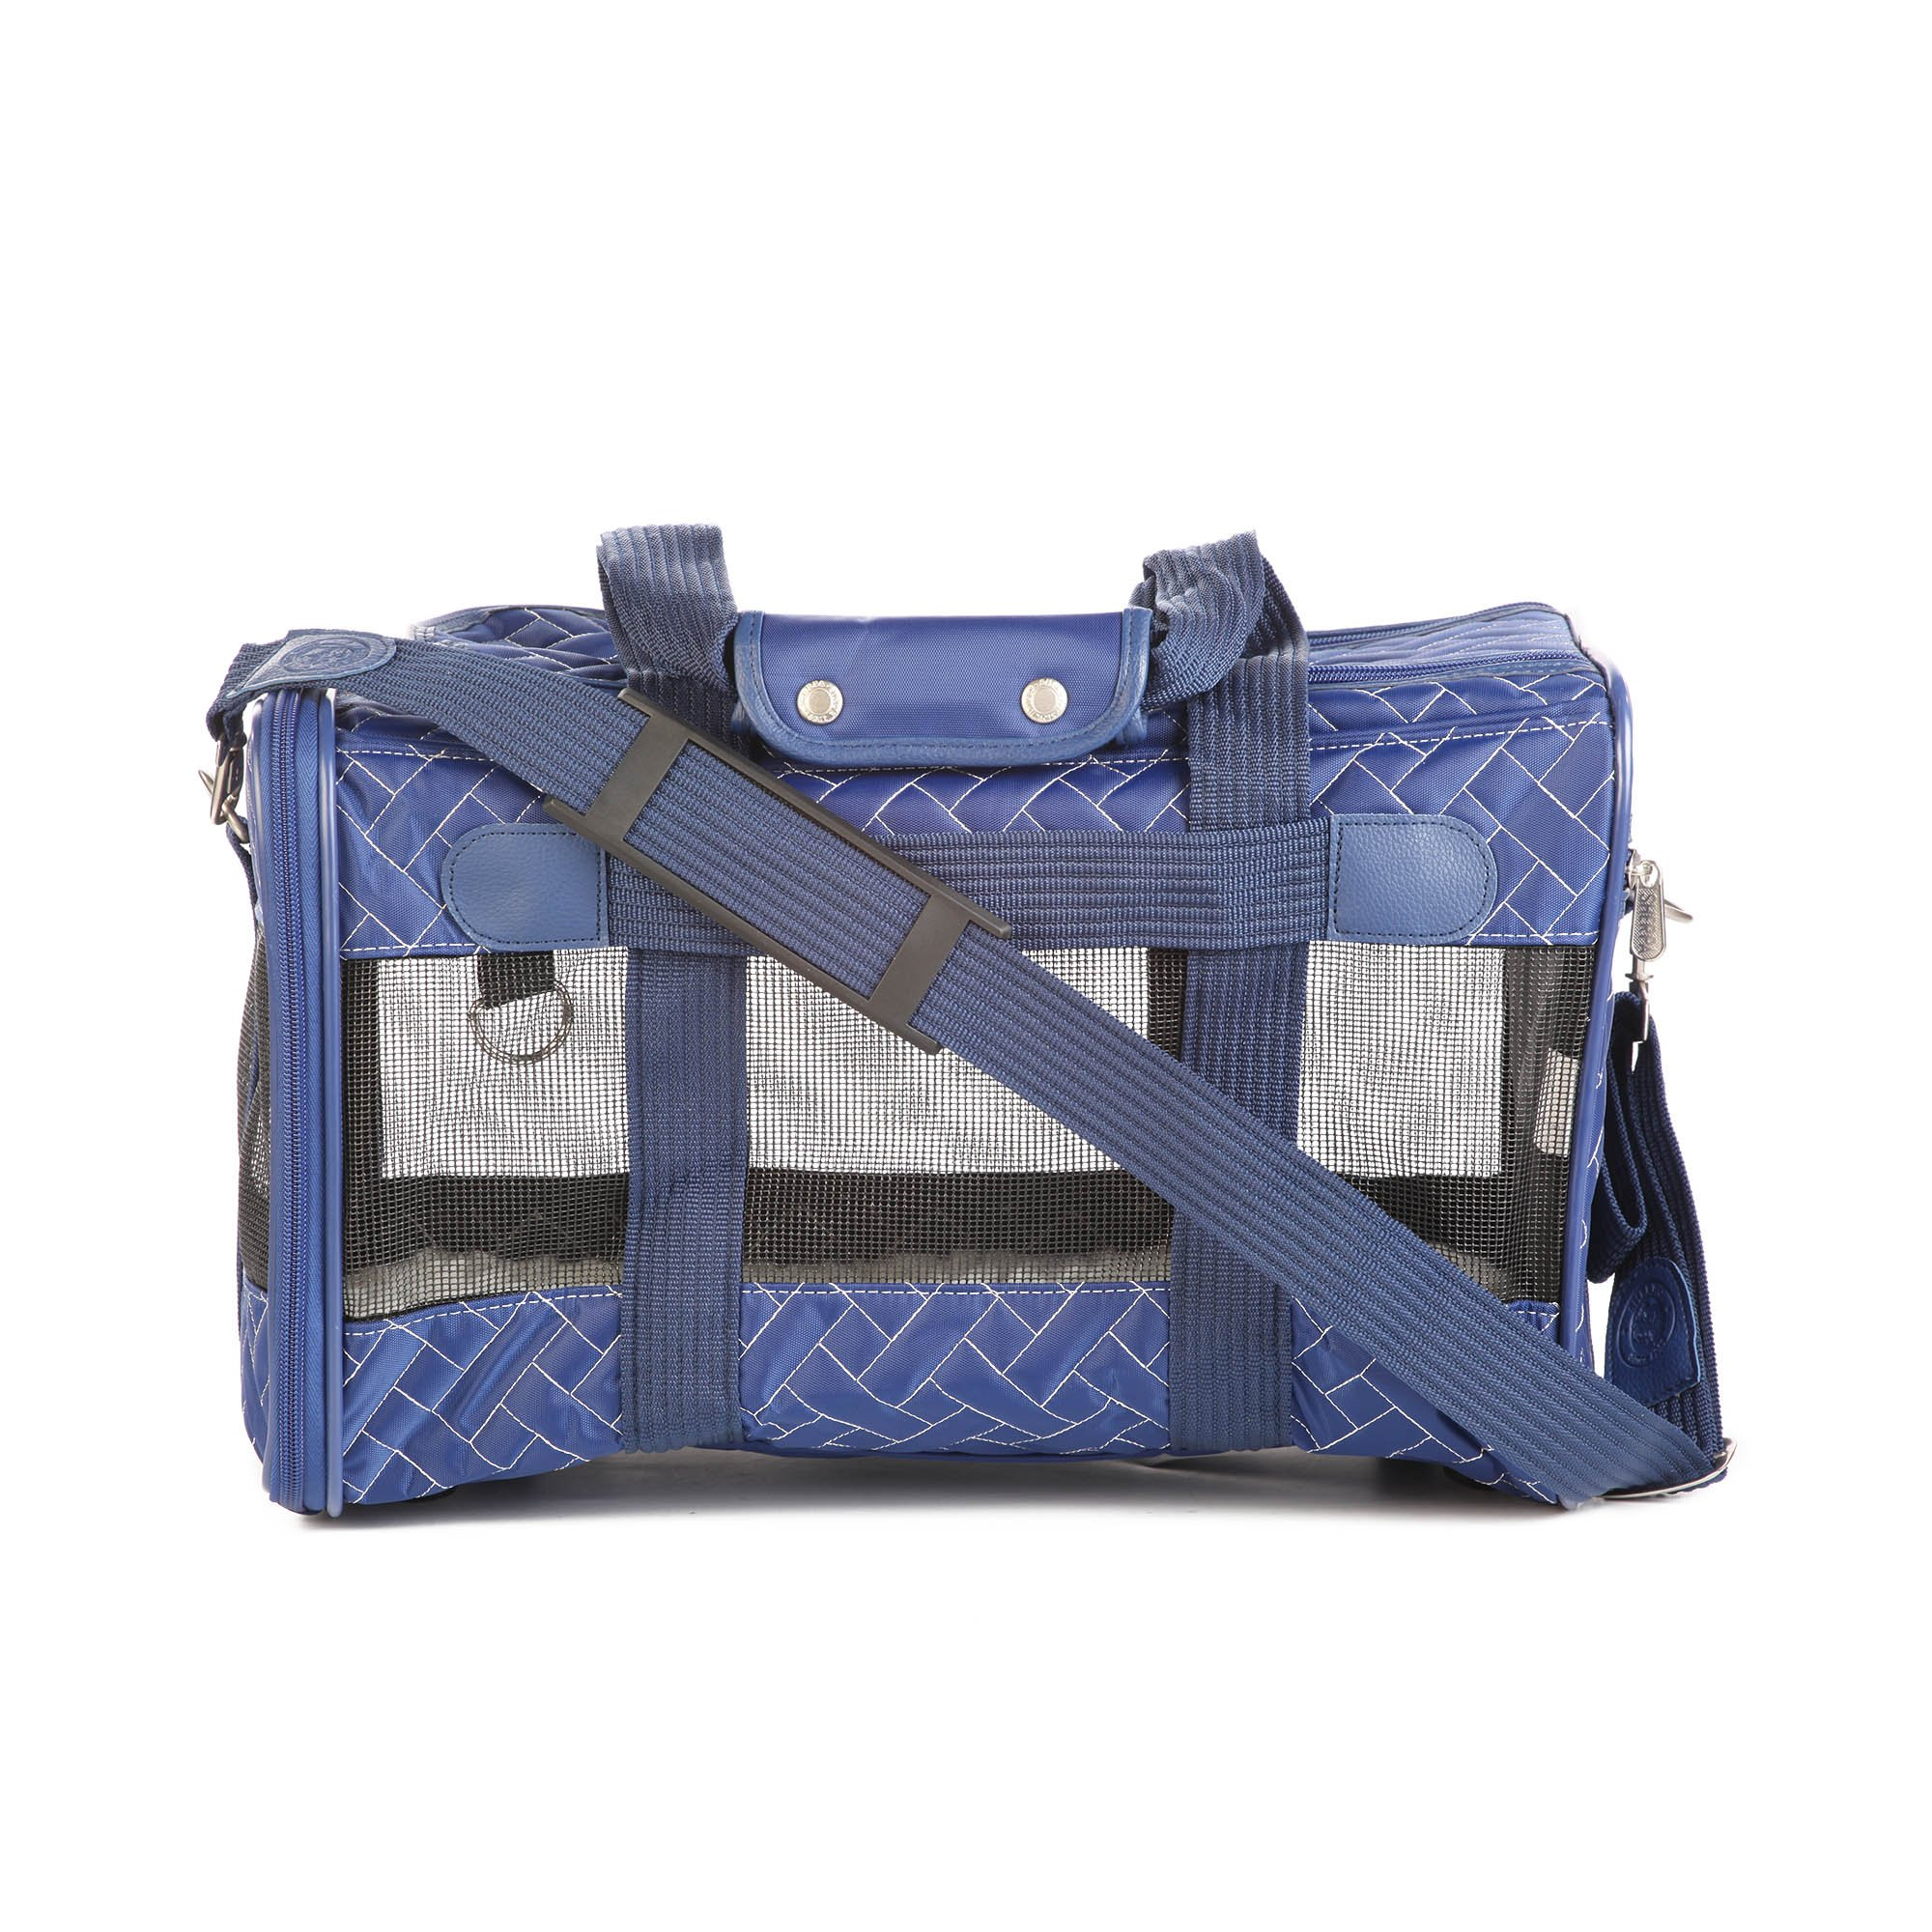 Sherpa Original Navy Dog Carrier